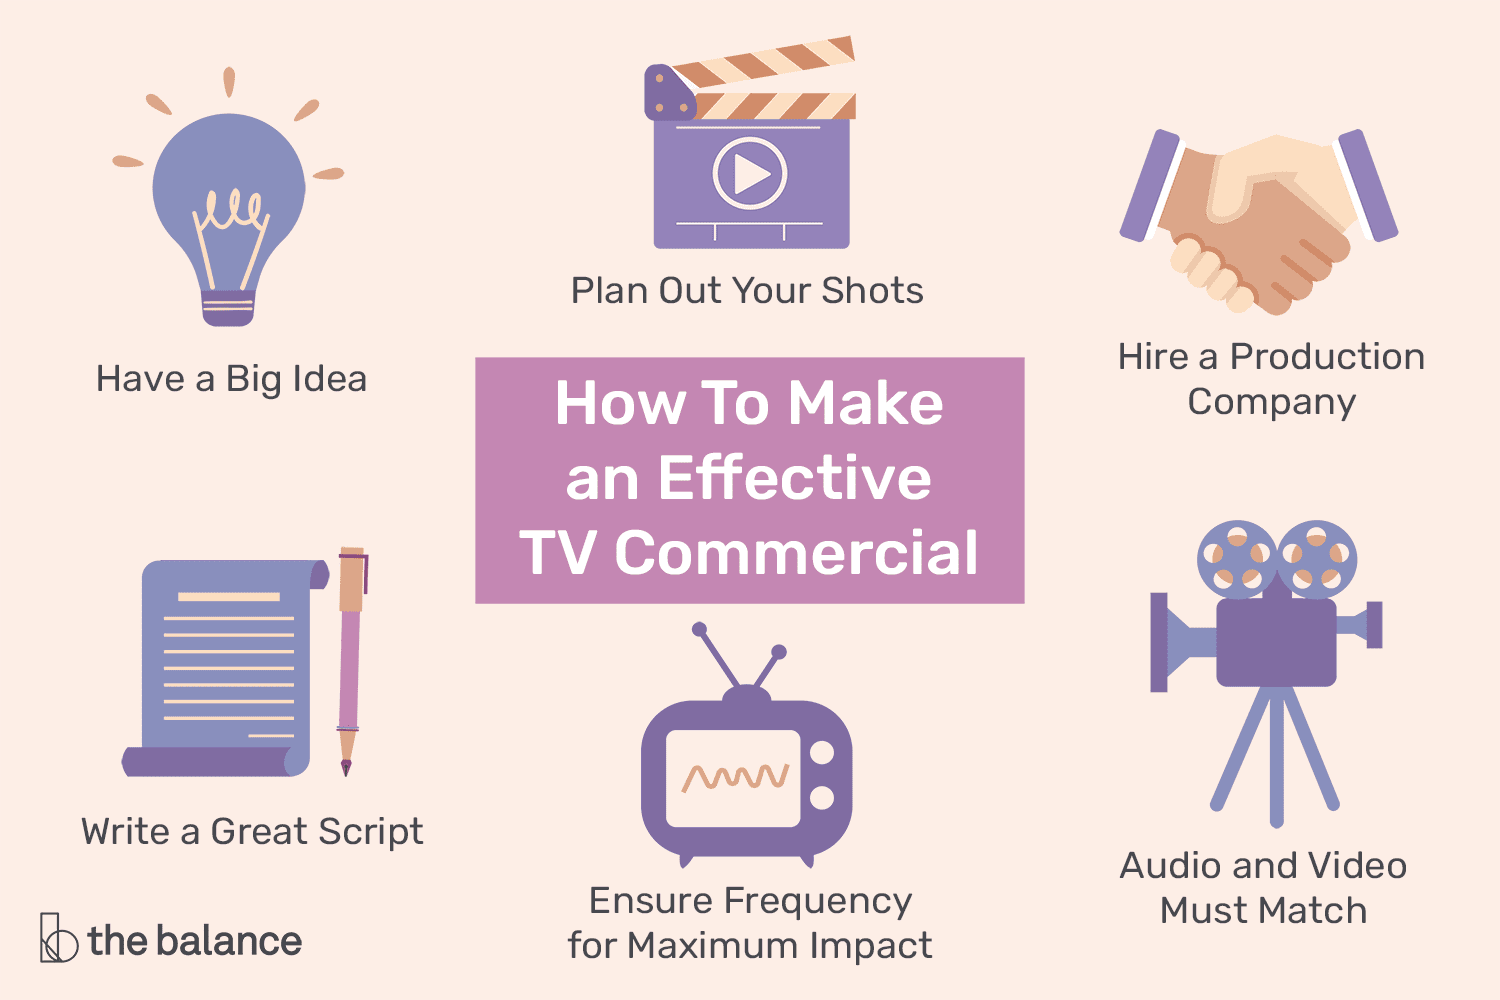 10 Steps to Take to Make a Great TV Ad